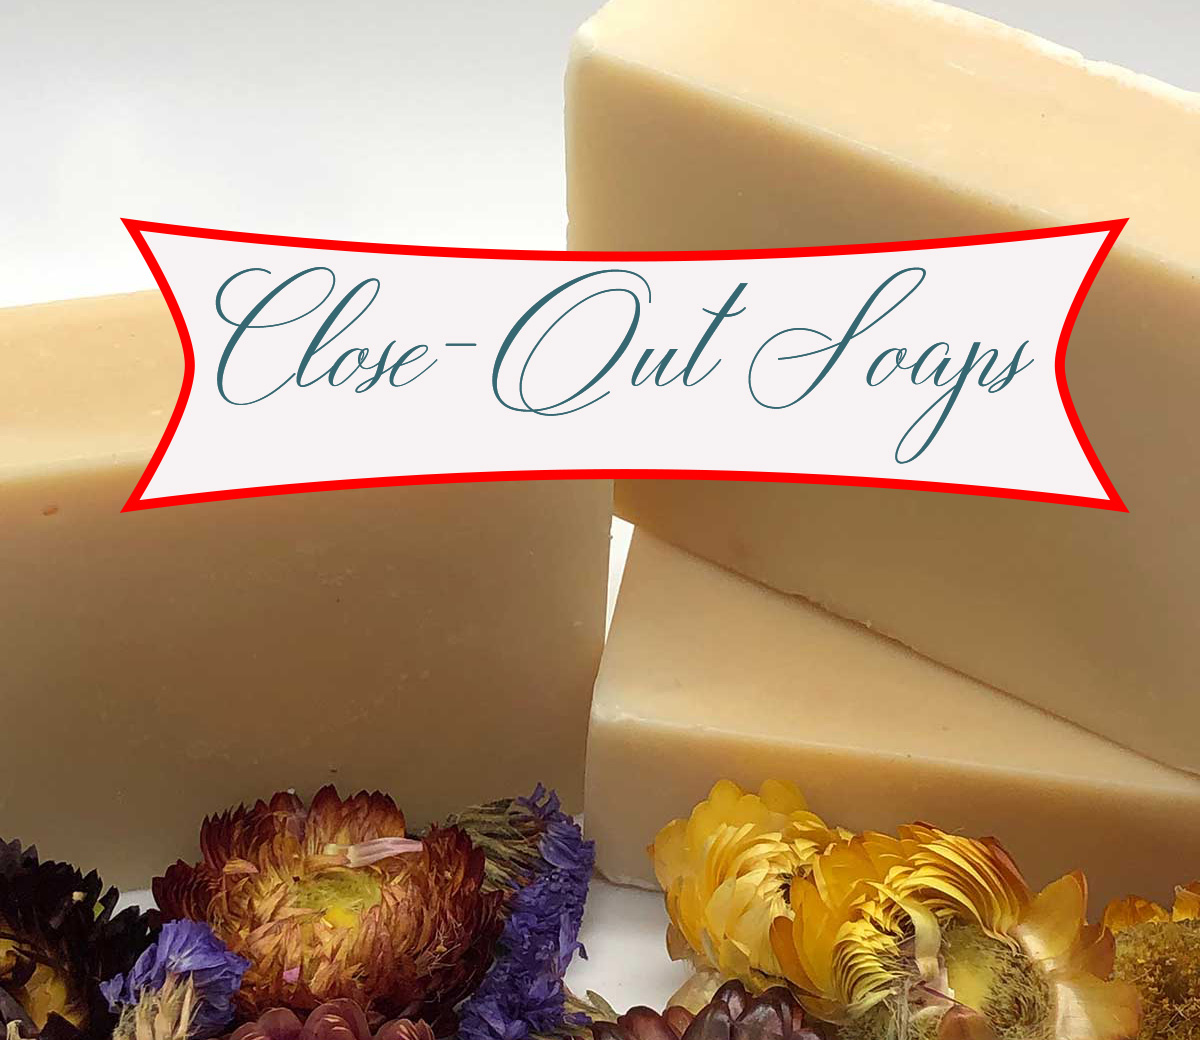 Close-out soap sales